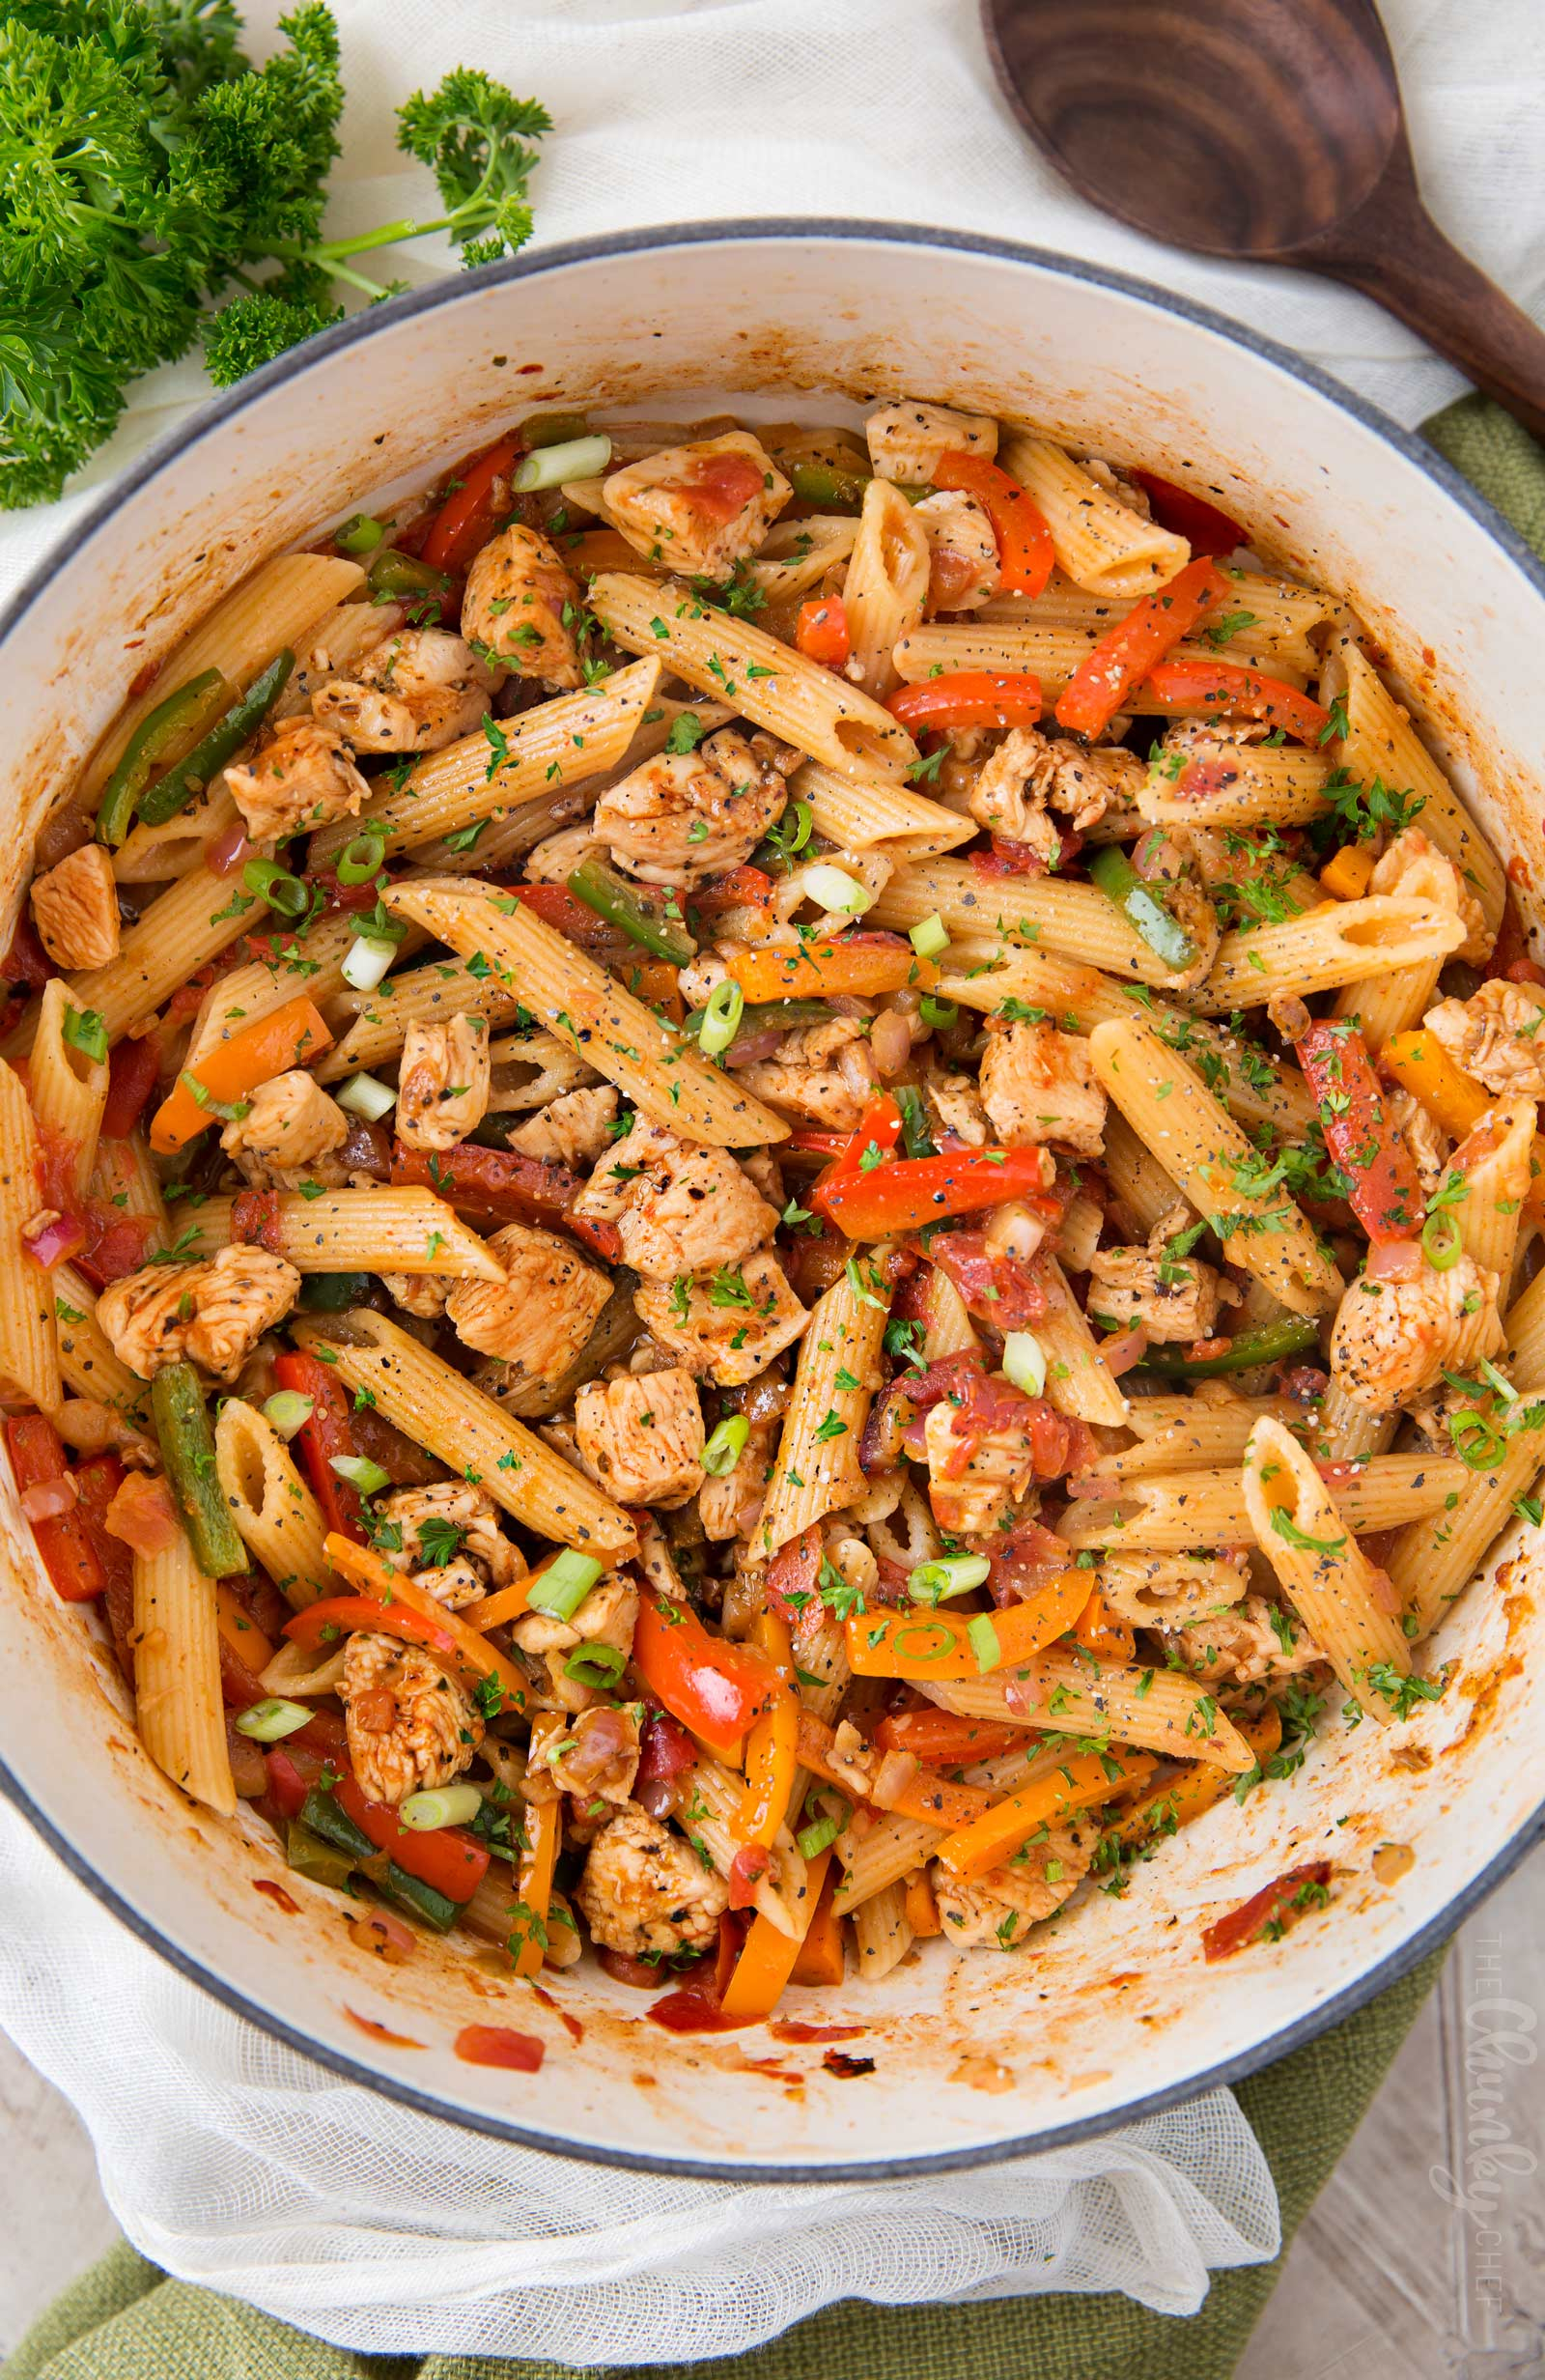 Chicken fajita pasta in cooking pot